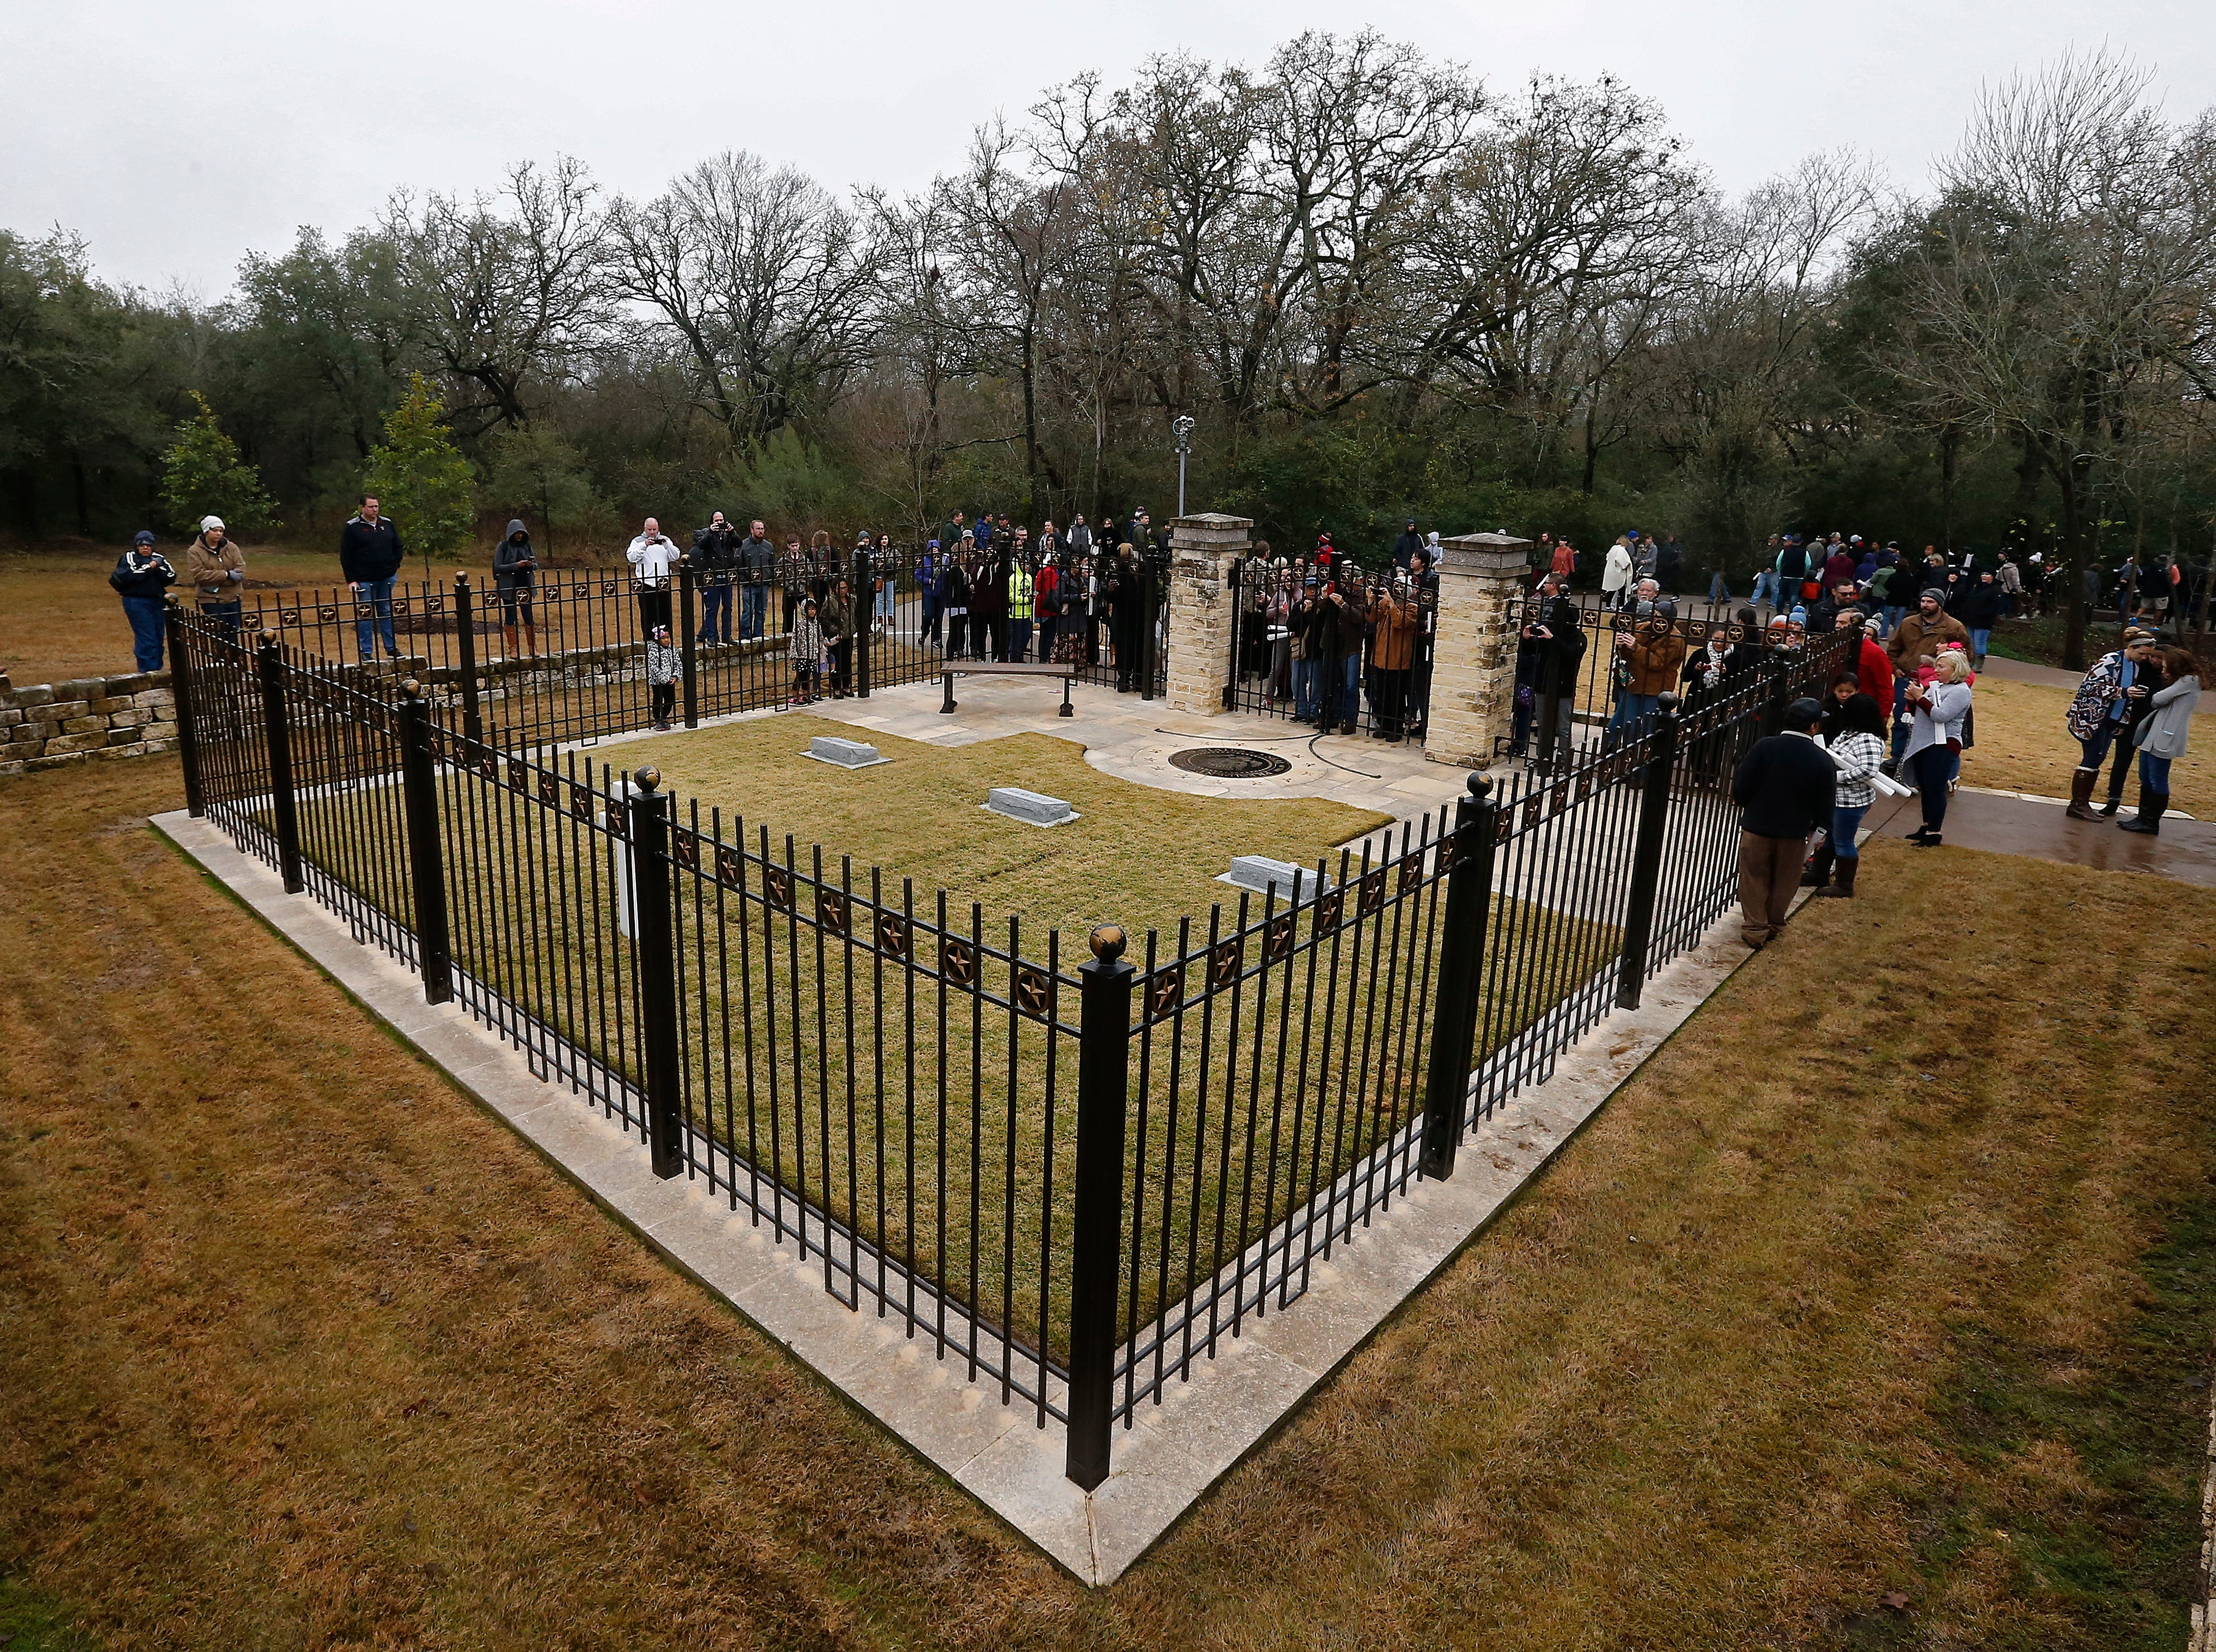 Visitors take pictures and look at the gravesite of former US President George H.W. Bush, center, his wife Barbara Bush, left, and their daughter Robin at the Presidential Library and Museum in College Station, Texas on Dec. 8, 2018. Bush died at the age of 94 on Nov. 30, 2018 at his home in Texas. George H.W. Bush was the 41st President of the United States (1989-1993).